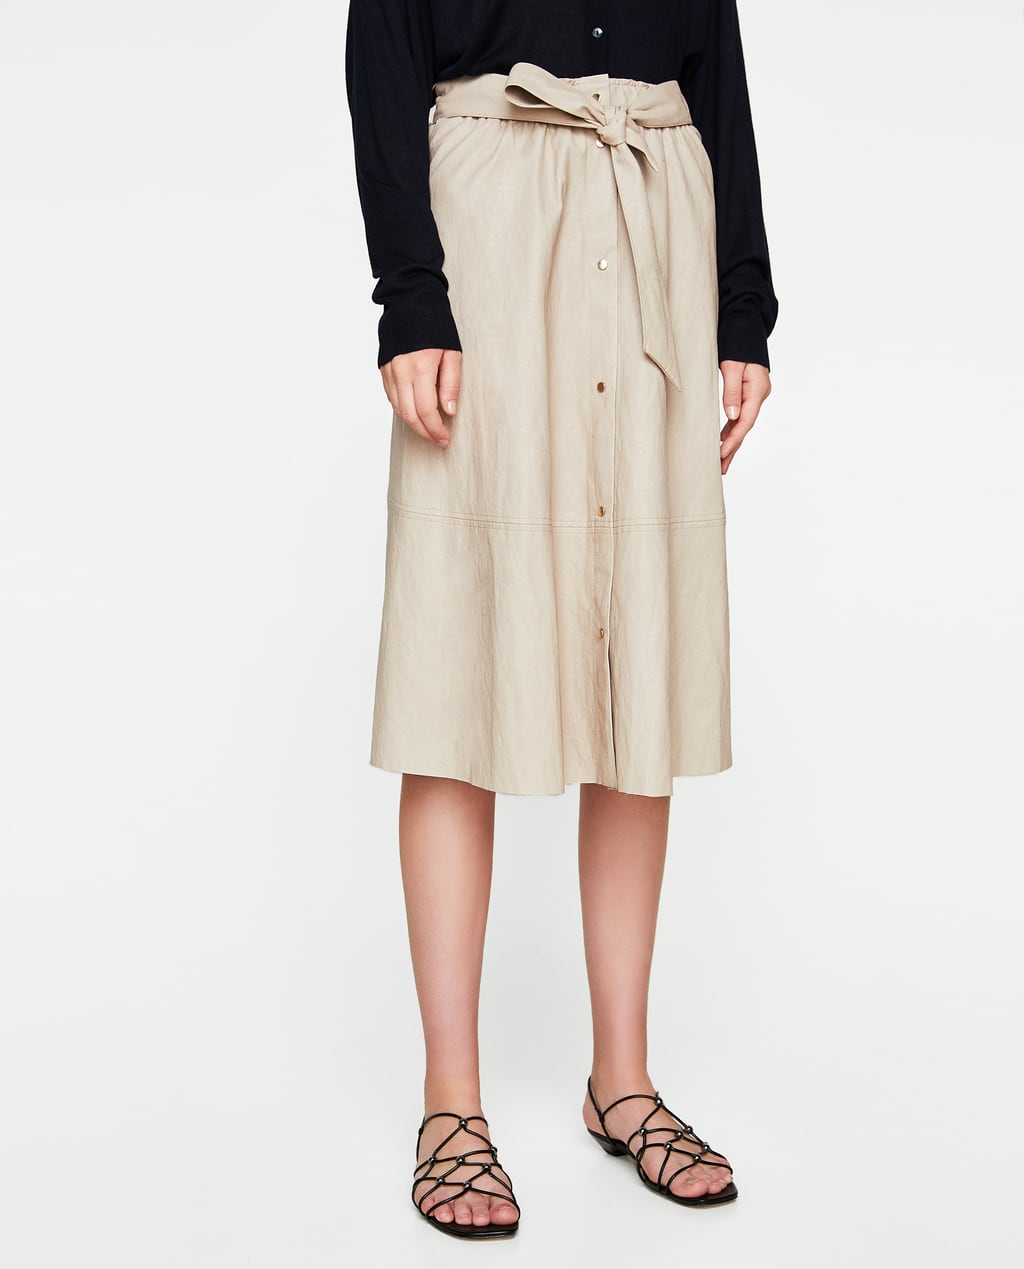 faux leather skirt with bow - skirts-woman | zara united states